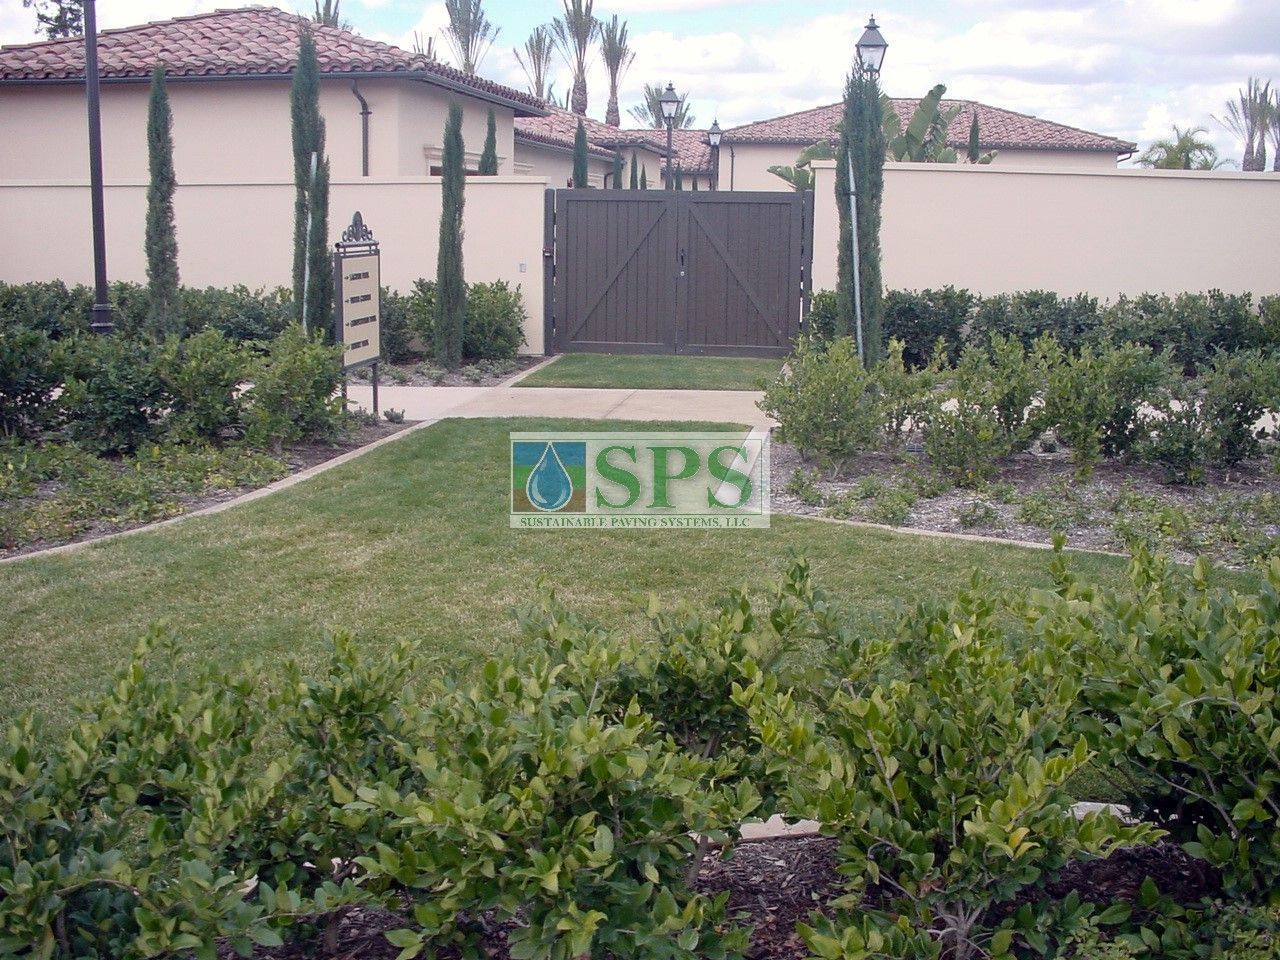 Emergency Vehicle Access using Concealed Grasscrete Systems without compromising the landscaping installed at Woodbury Community Development in Irvine, CA.